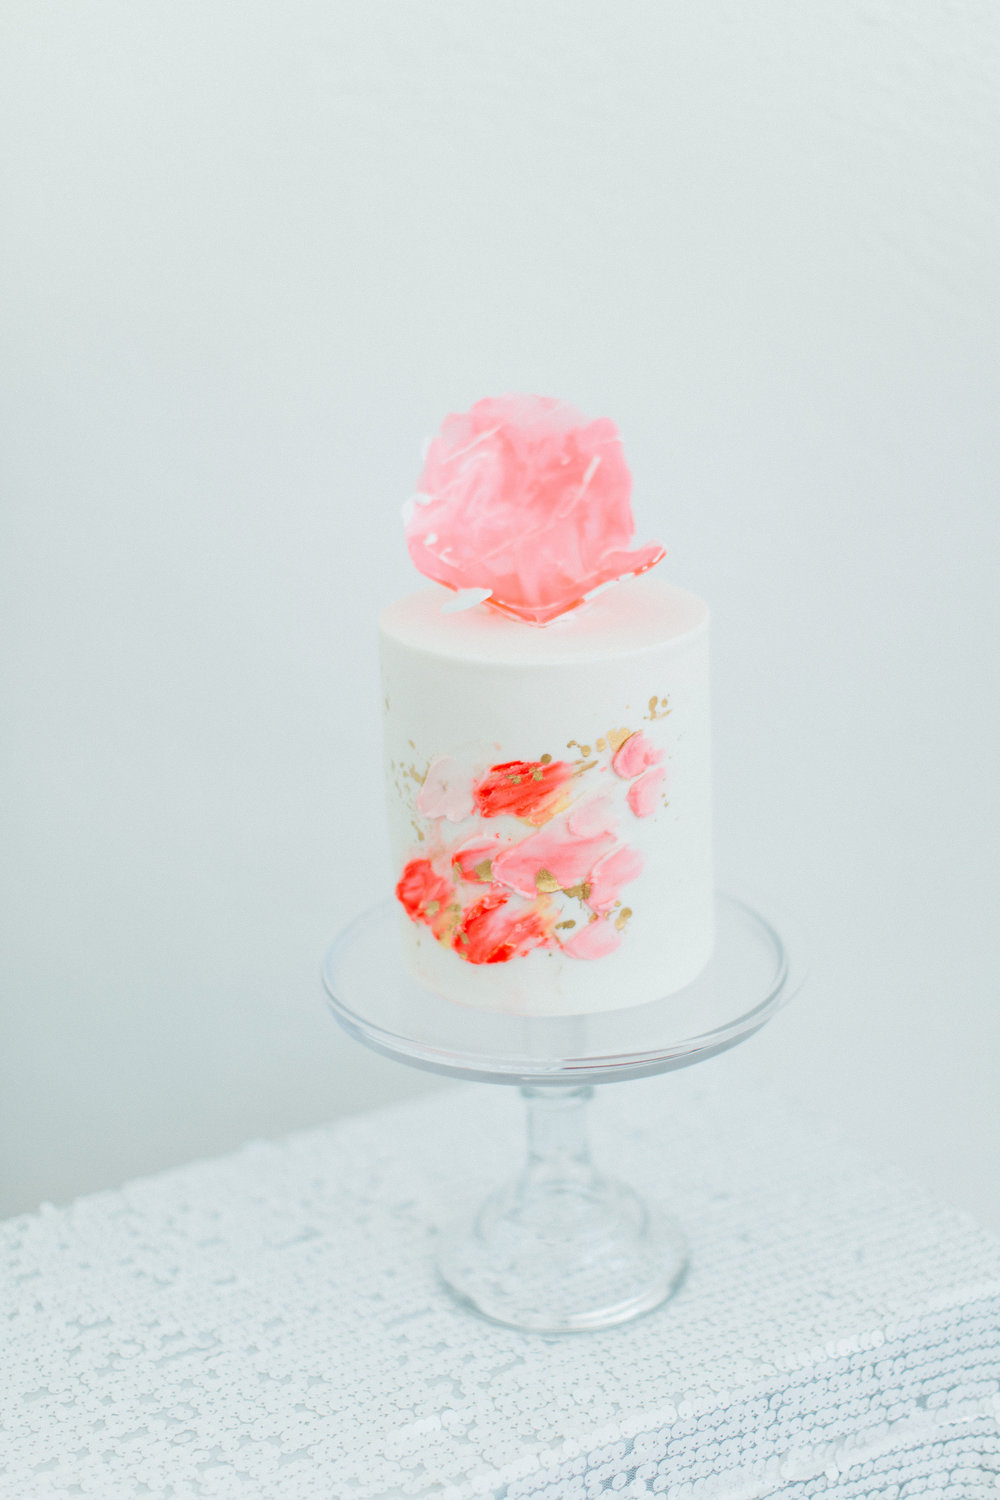 Living Coral, PInk, and White Cake Design Ideas with Transparent Cake Stand (Photo by: Francesca Penko Photography)